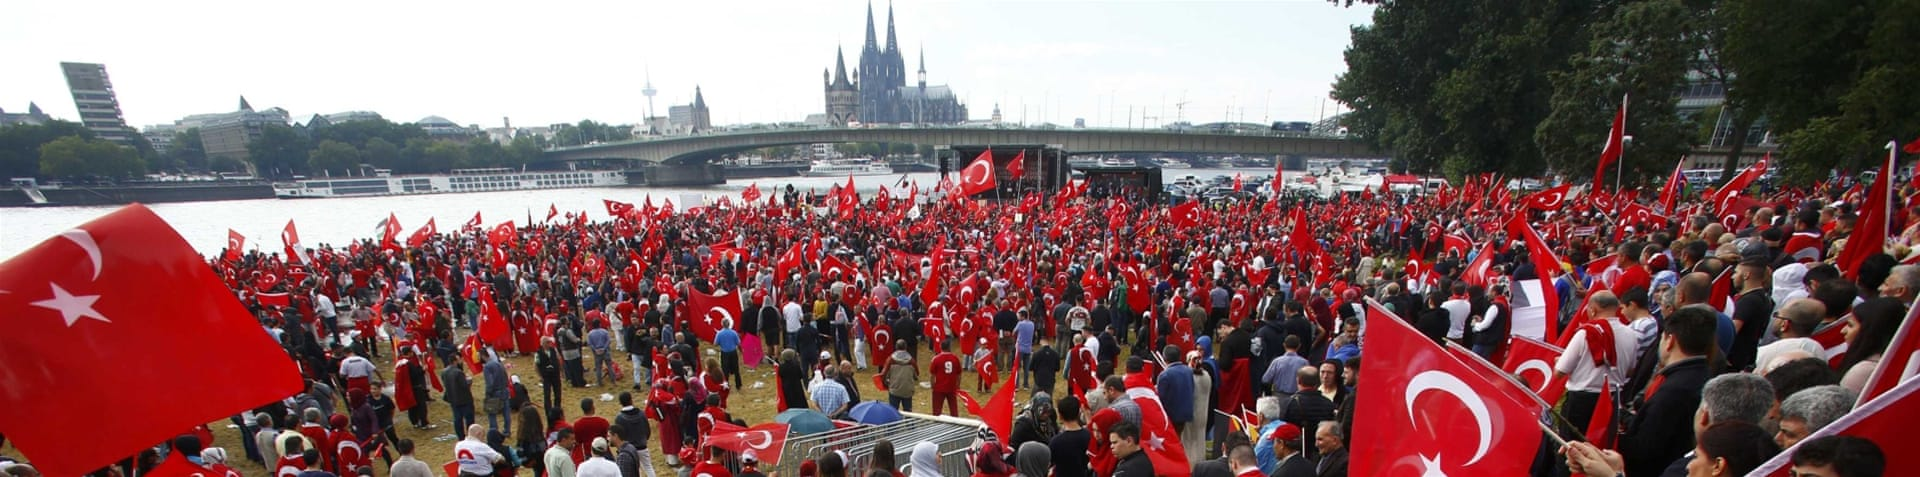 Tens of thousands of Erdogan supporters rallied in Cologne to show their opposition to the failed coup attempt on July 15 [Reuters]